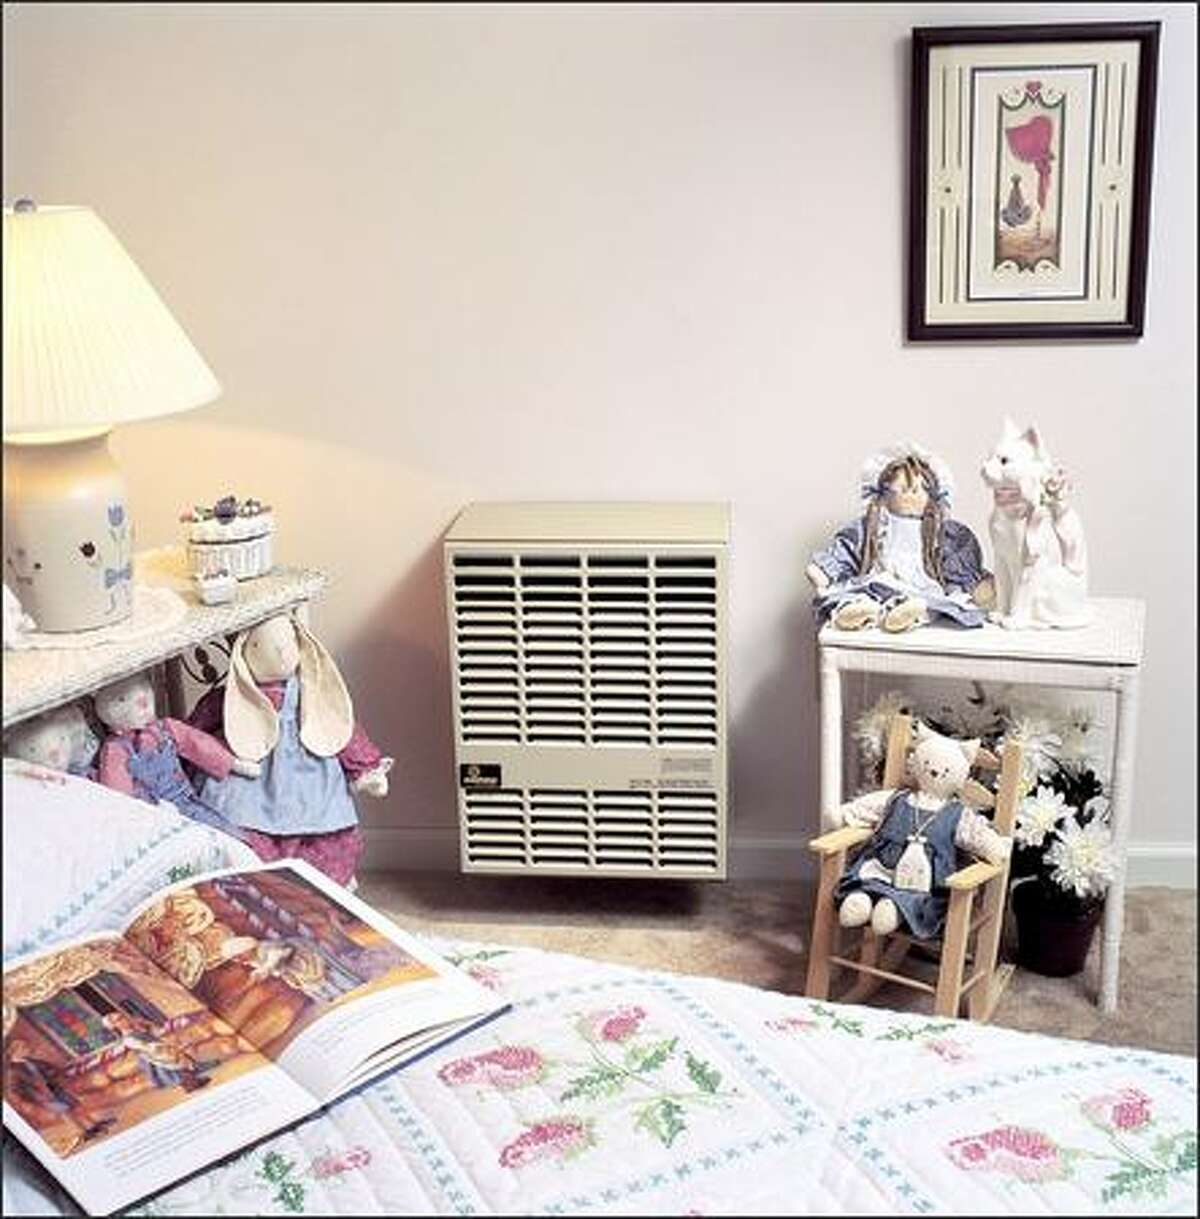 Heater options include a small, direct-vent gas heater that uses no electricity. (EMPIRE COMFORT PRODUCTS)